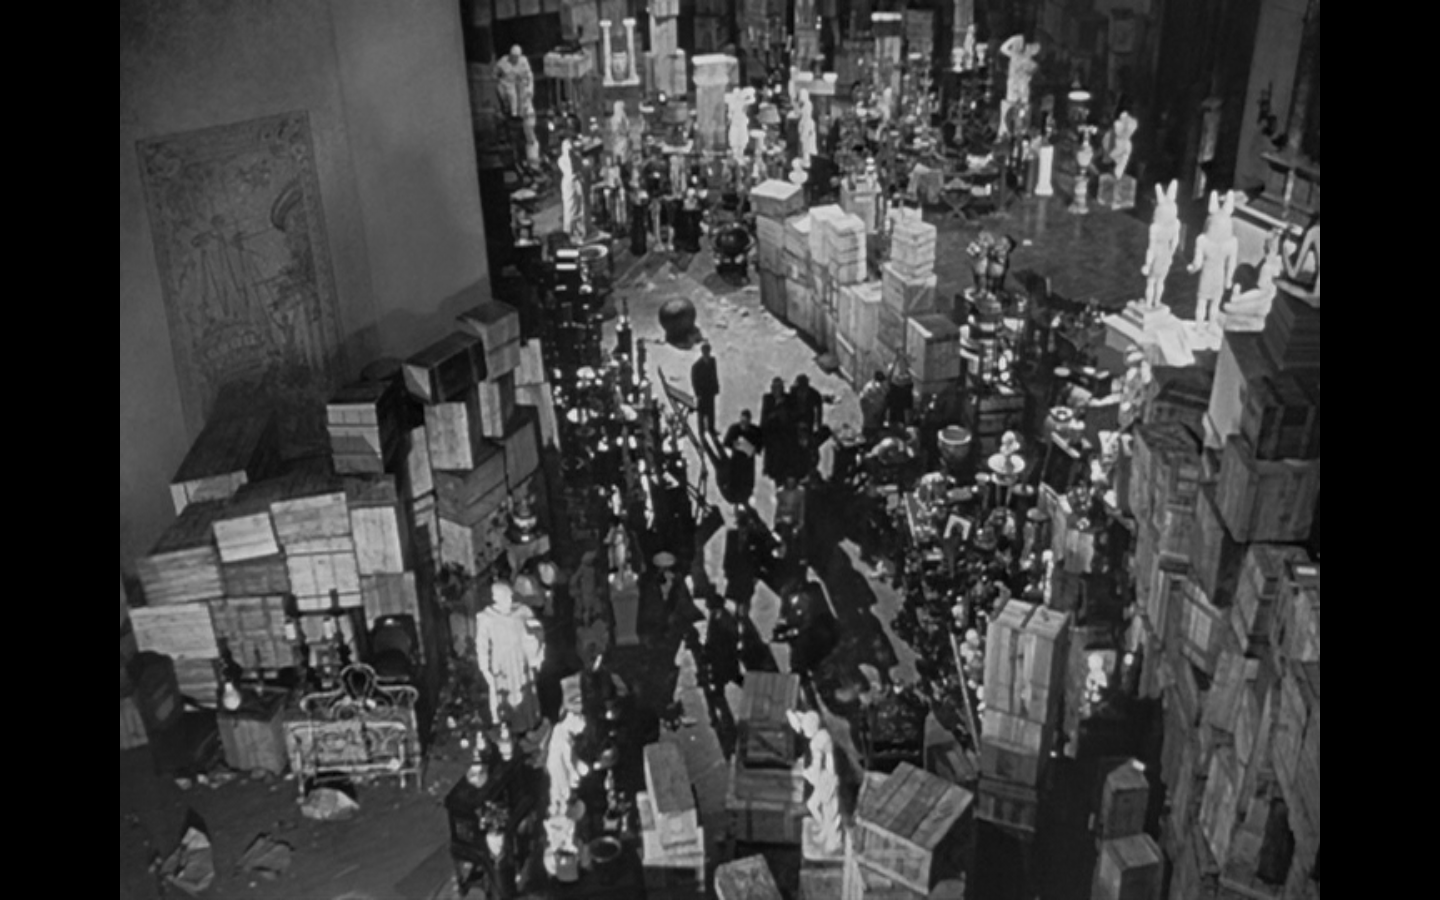 citizen kane film analysis A film analysis on citizen kane: what is the film's story what is the film all about was the story easy to follow what is the film's theme.